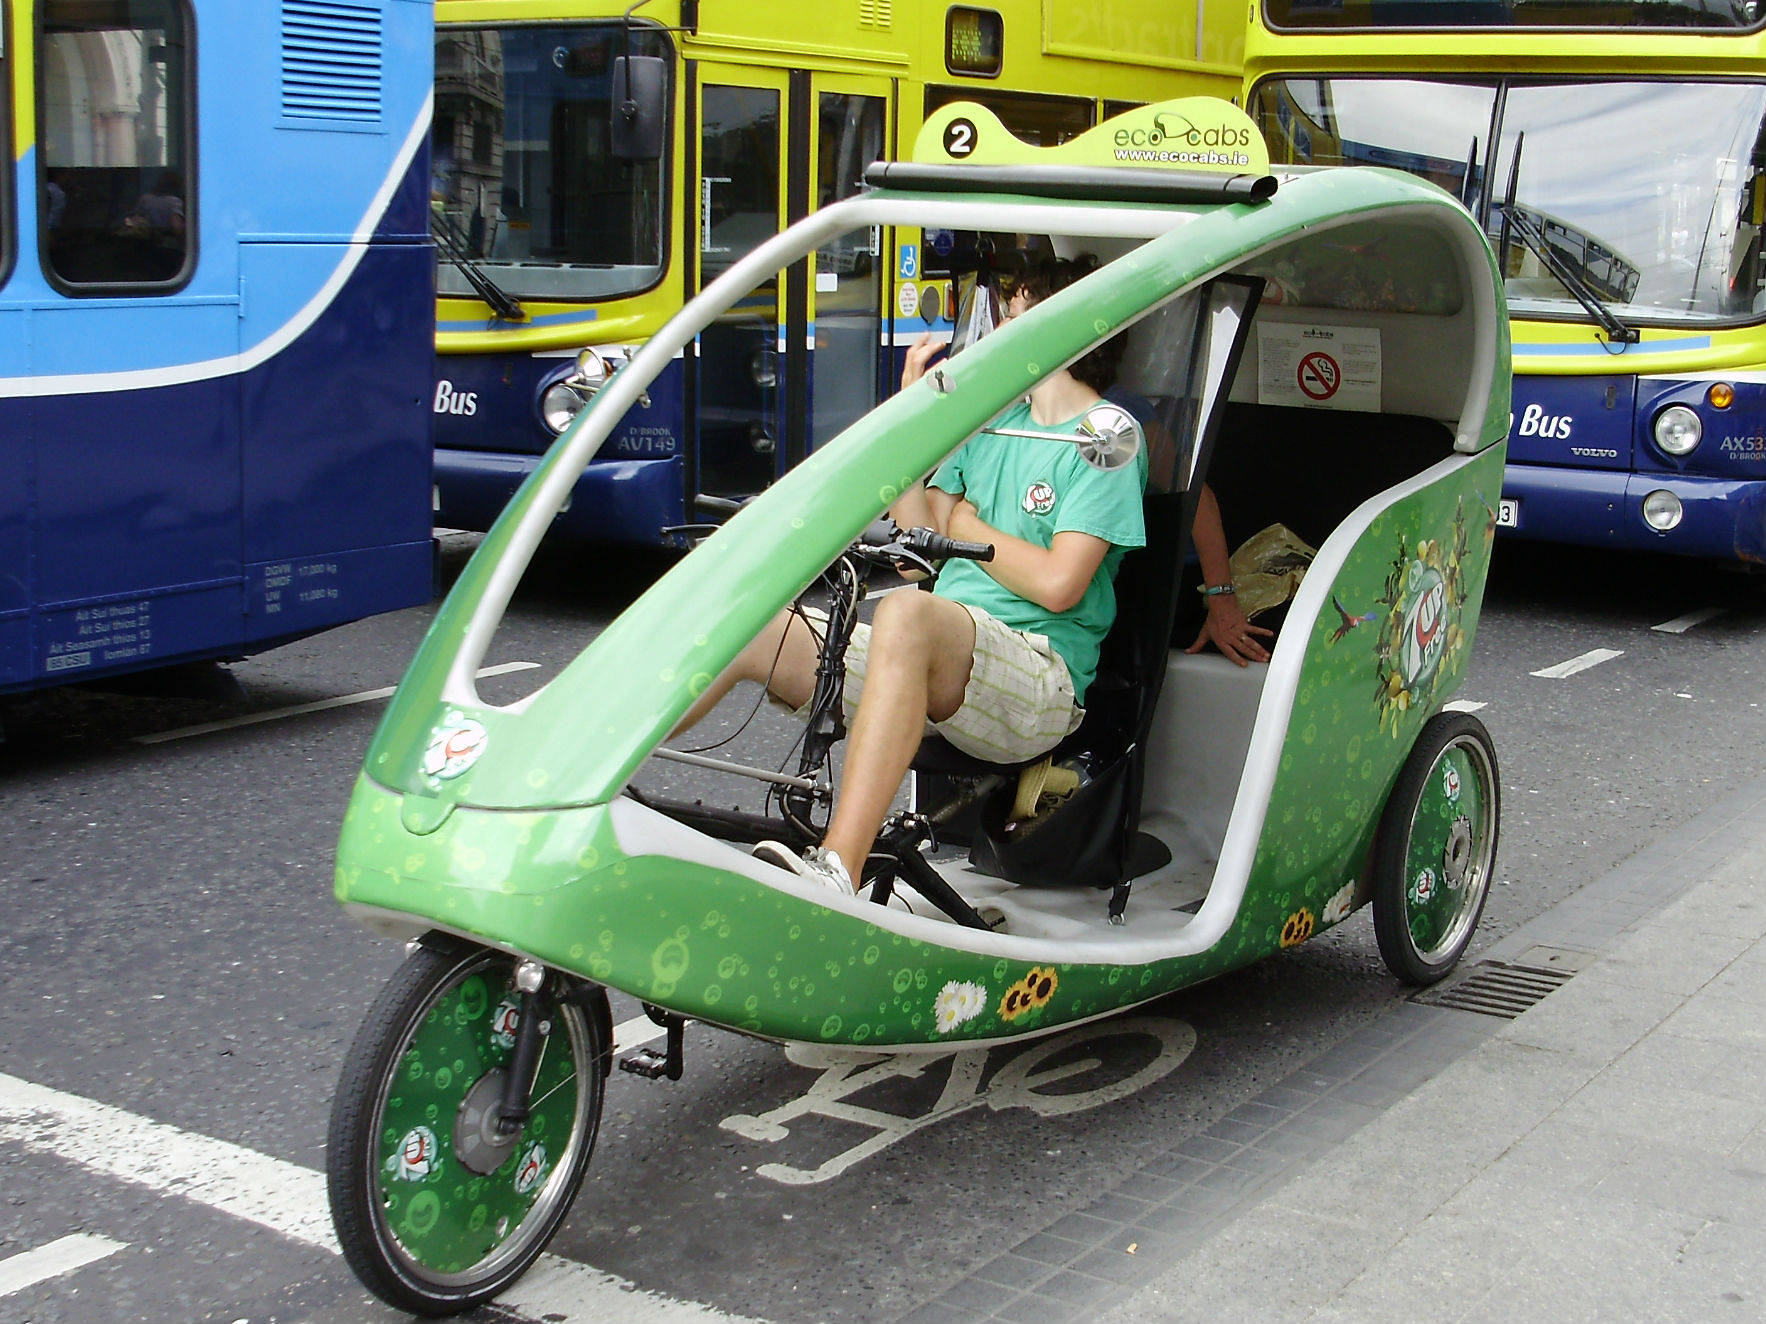 Changes Tabled To Allow Rickshaw Regulation